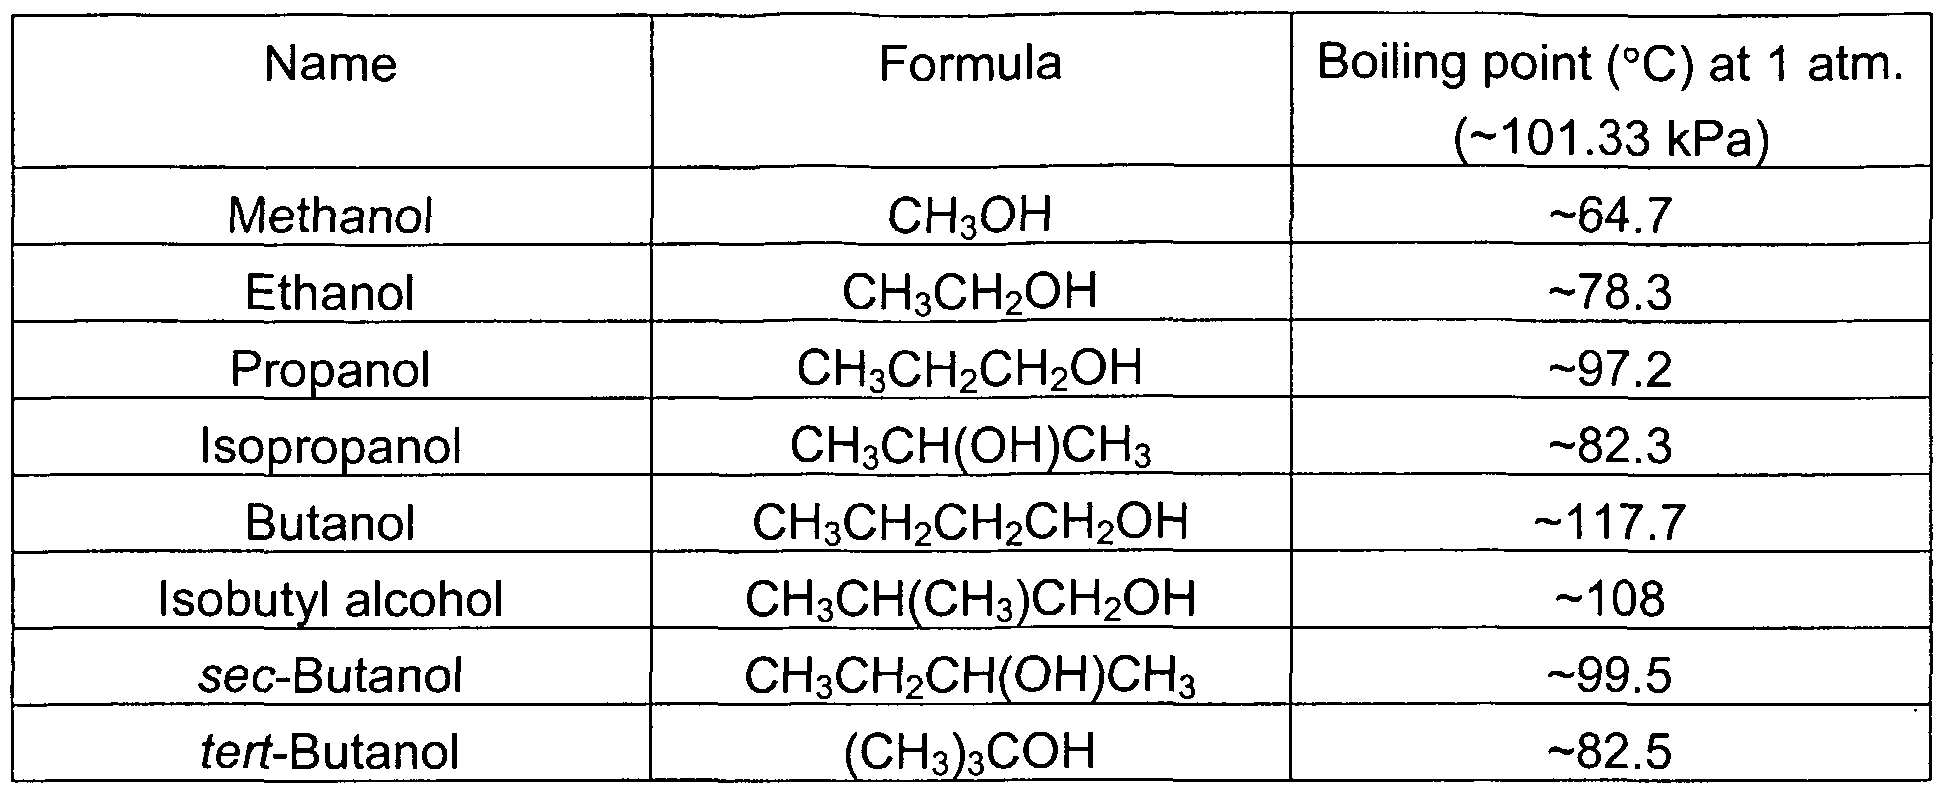 melting point and boiling point of isopropyl alcohol Vapors may accumulate and travel to ignition sources distant from point of use resulting in flash fires do not cut, drill, grind, or weld near or on containers as they can contain explosive.